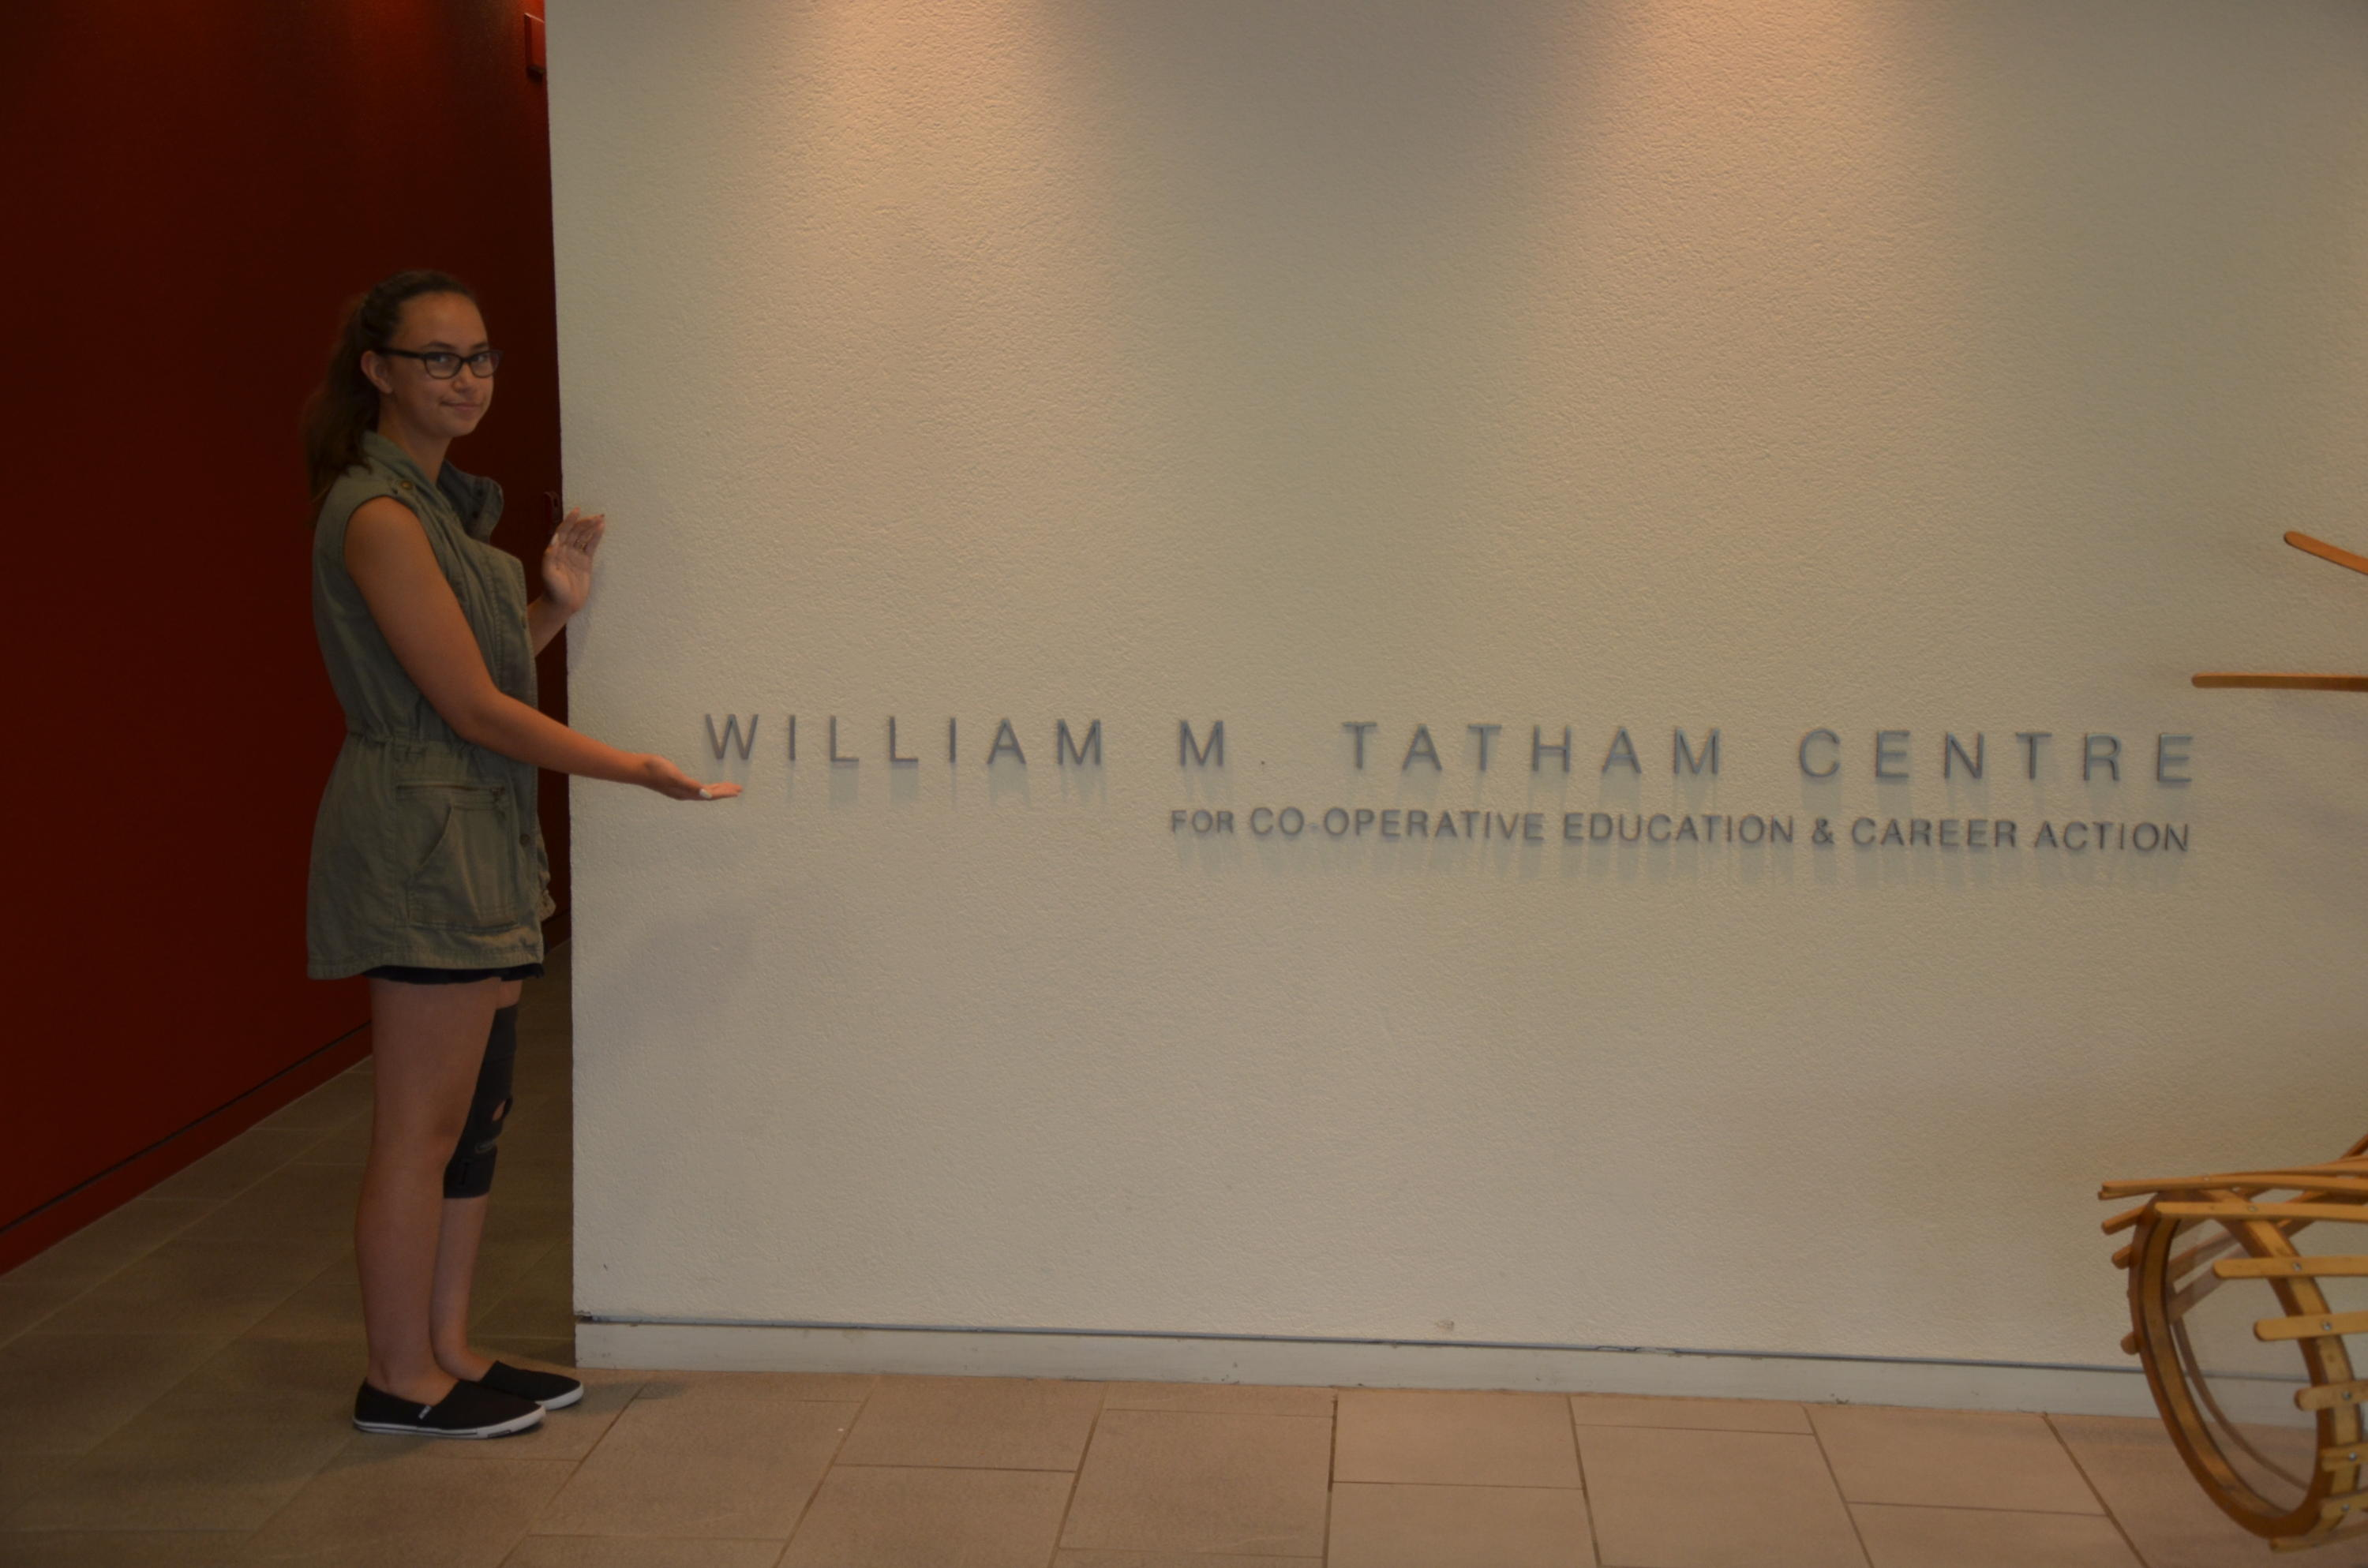 Kyrie at Tatham Centre standing beside the Tatham Centre sign